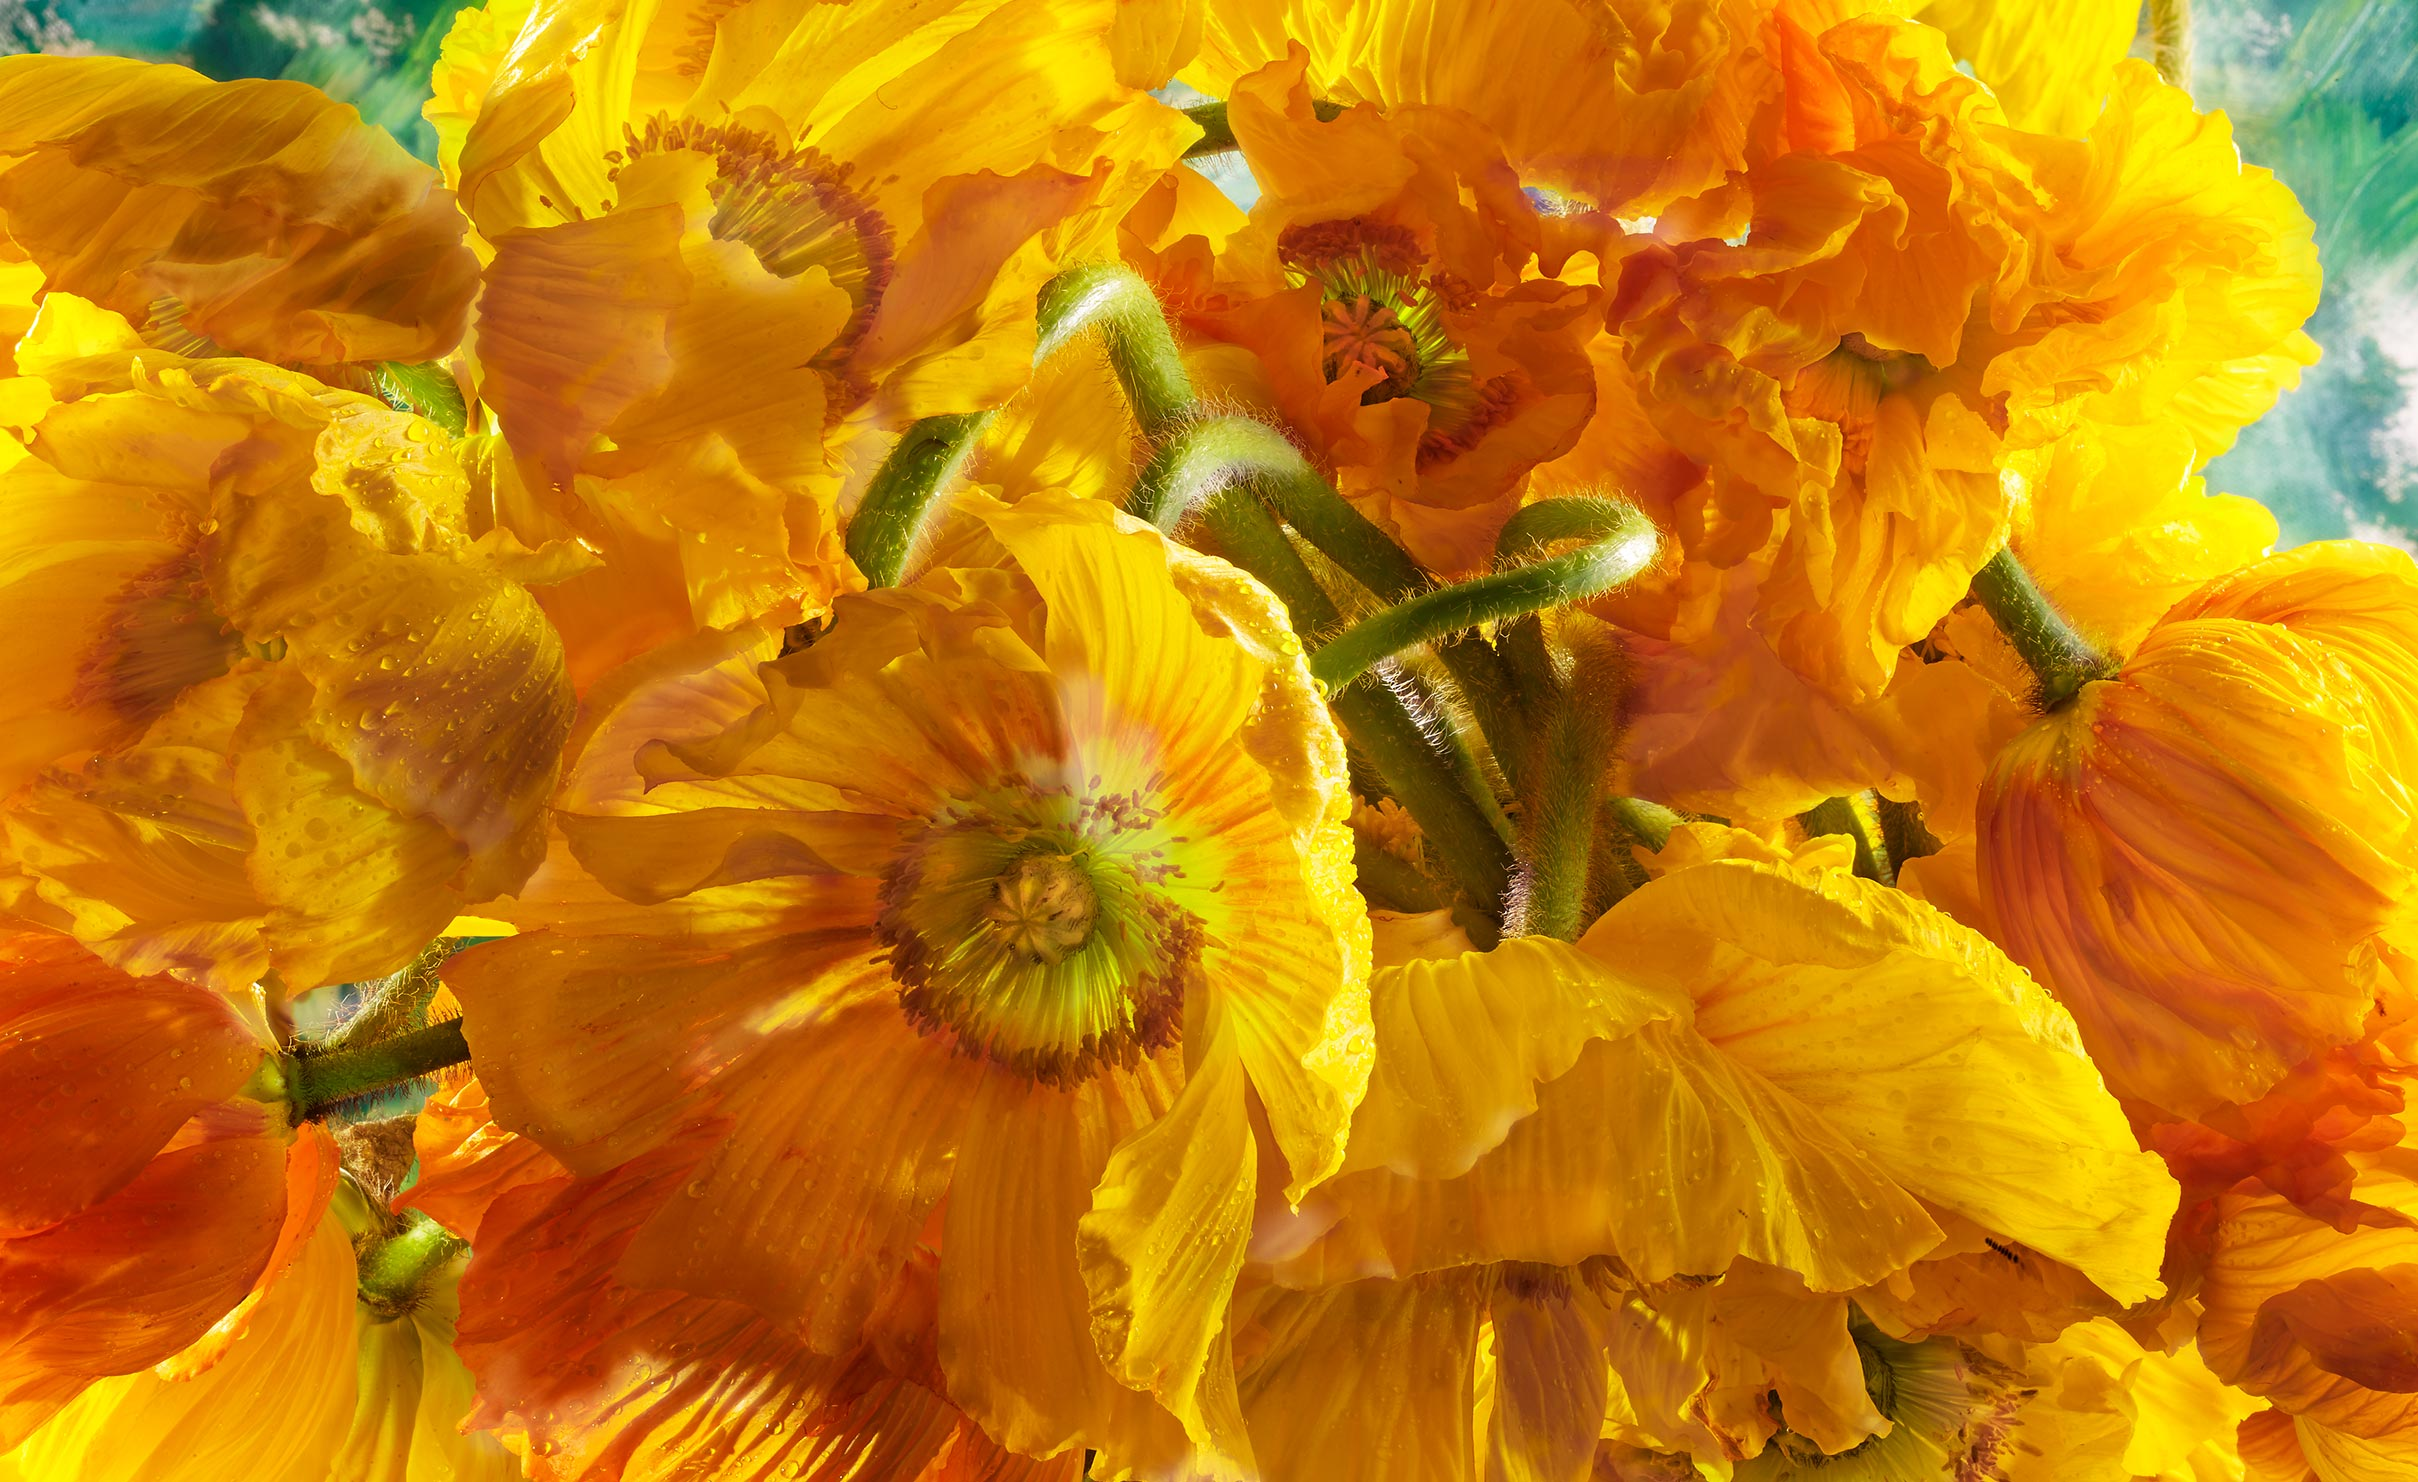 Yellow poppy flowers shot on a painted background